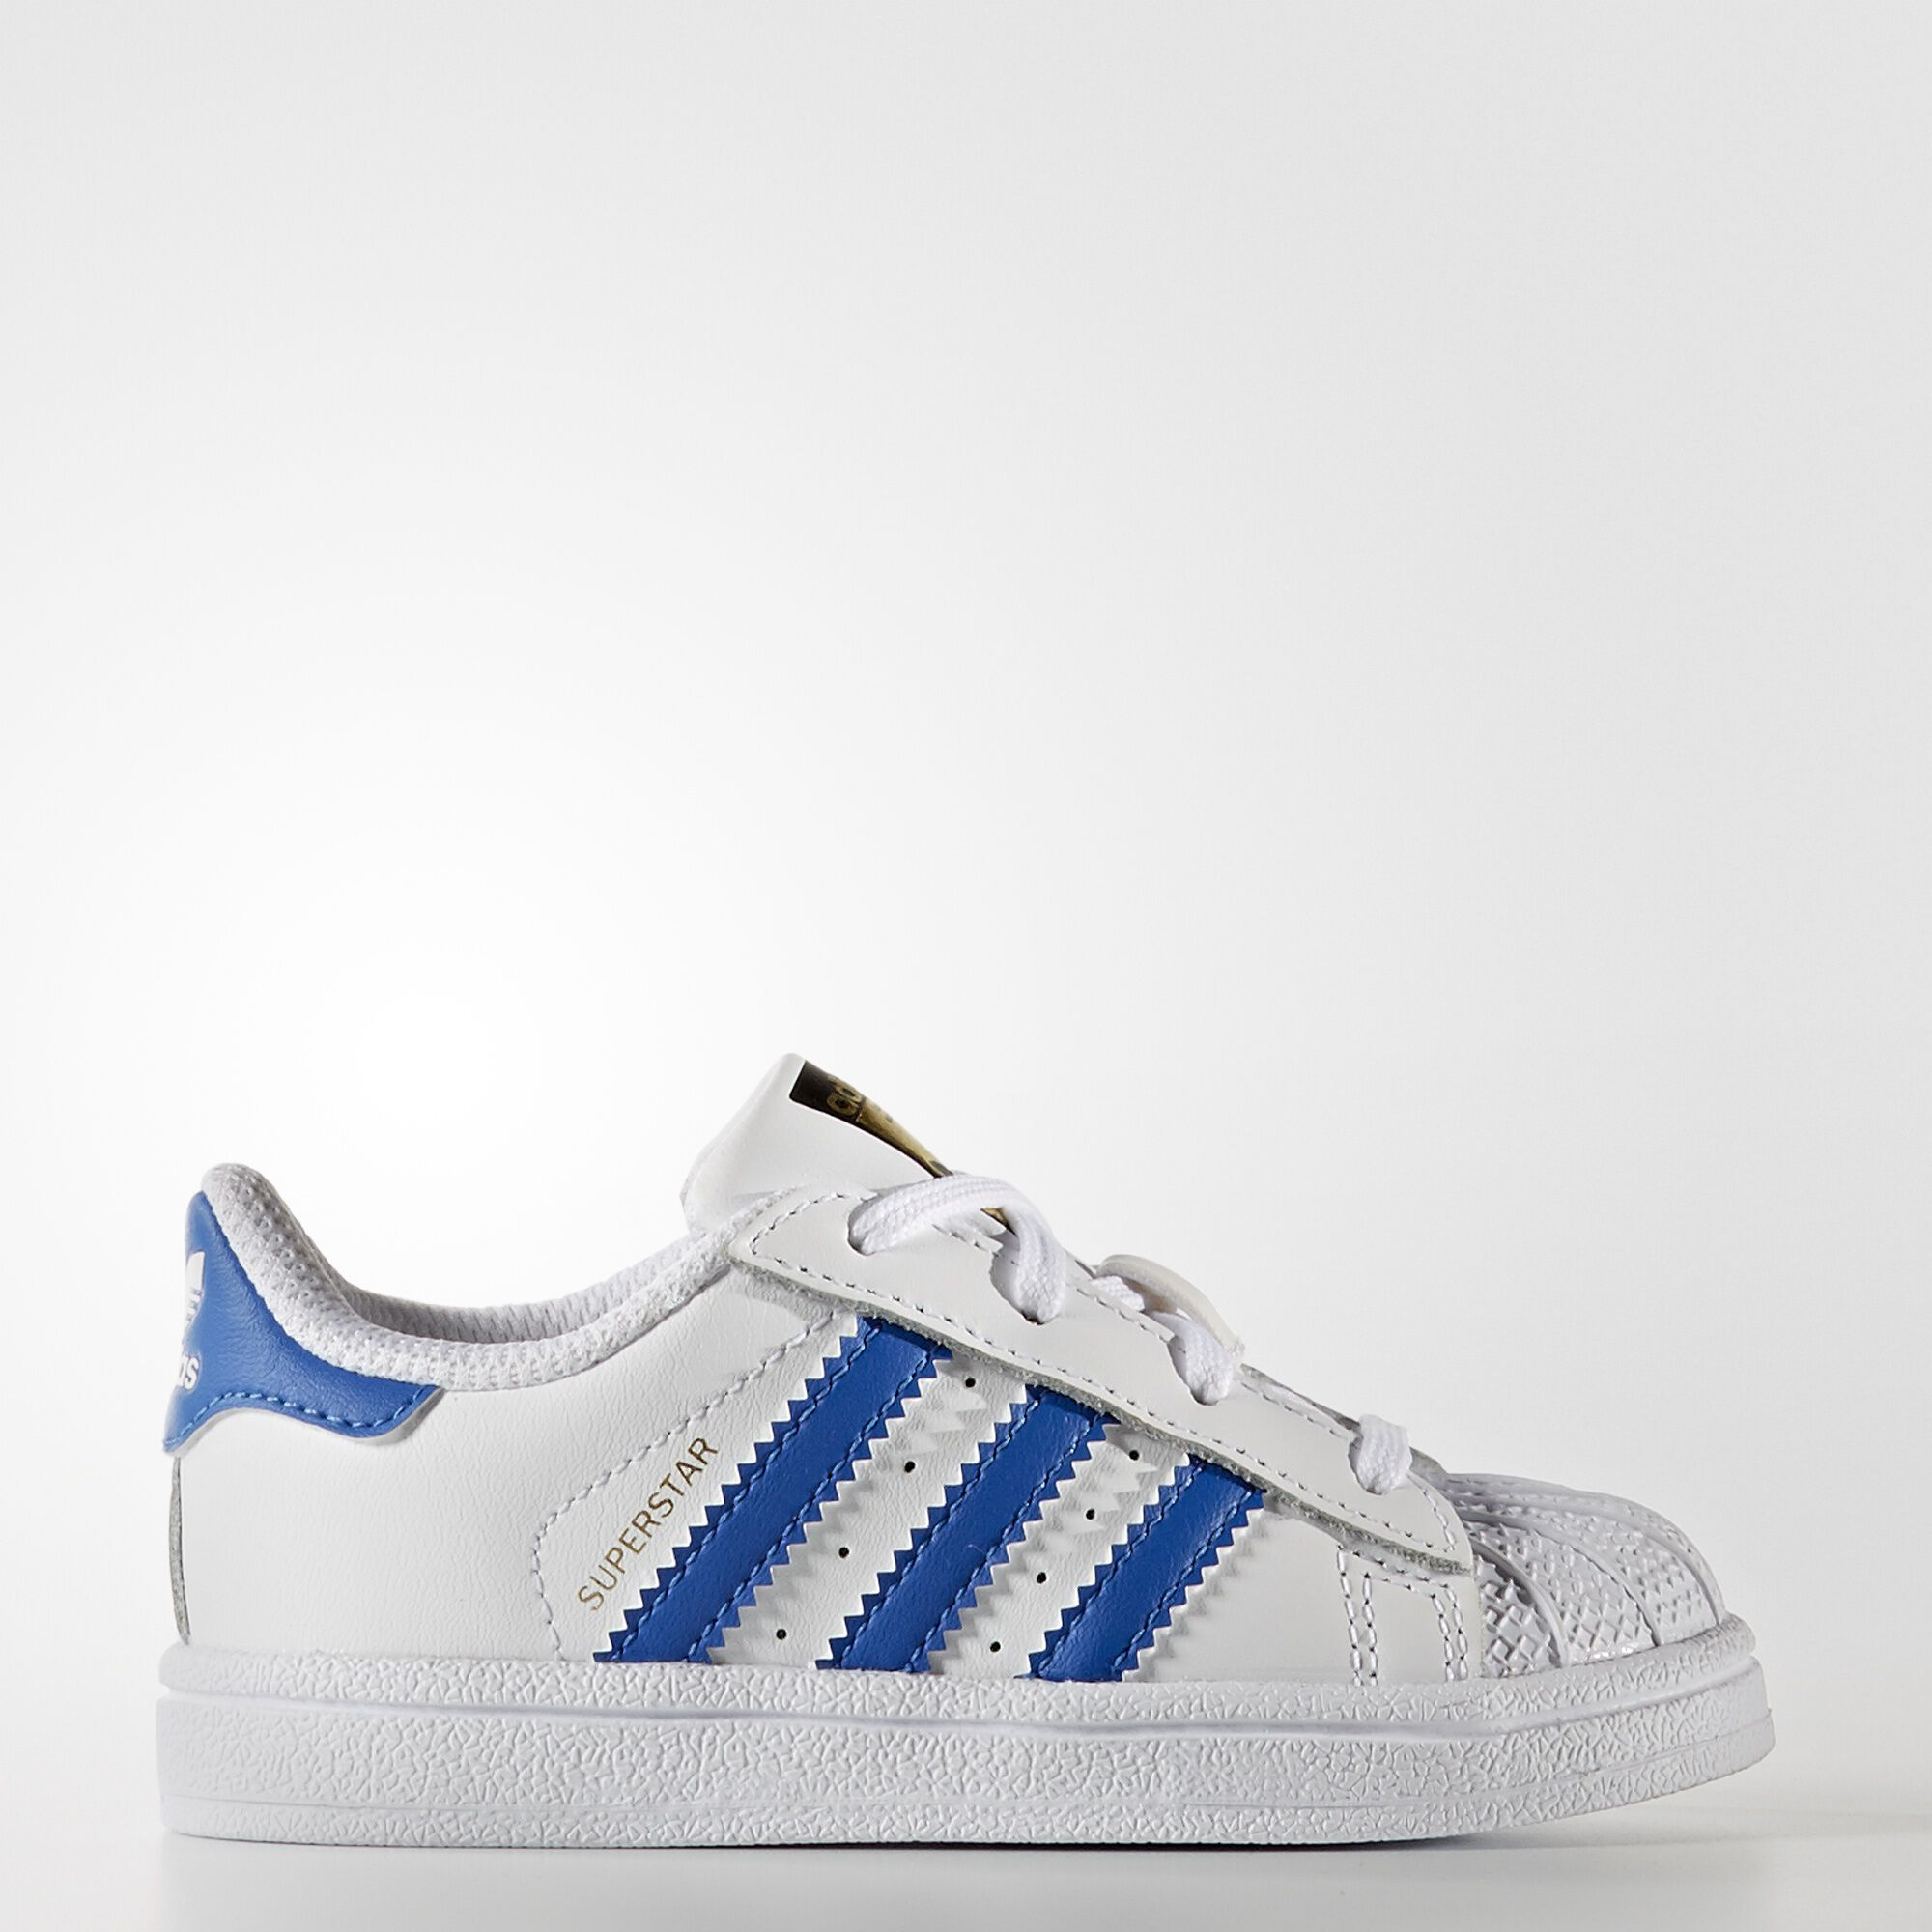 image: adidas superstar [41]